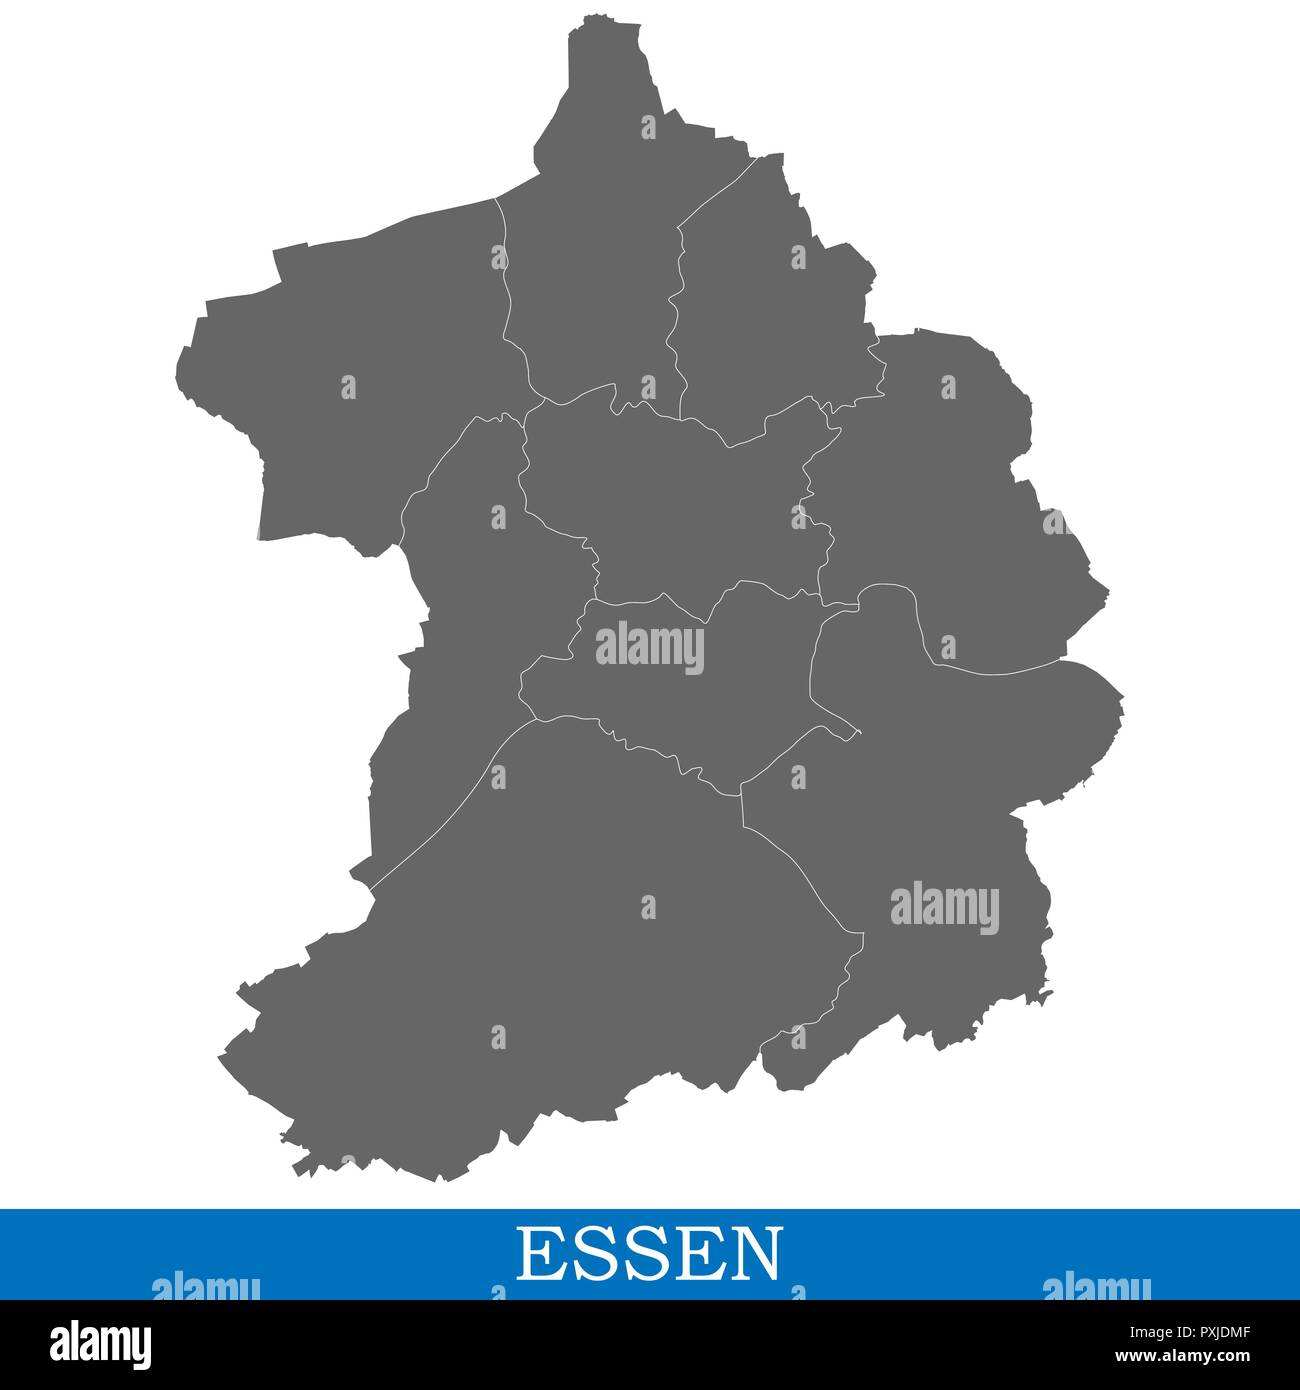 Map Of Germany Essen.High Quality Map Of Essen Is A City Of Germany With Borders Of